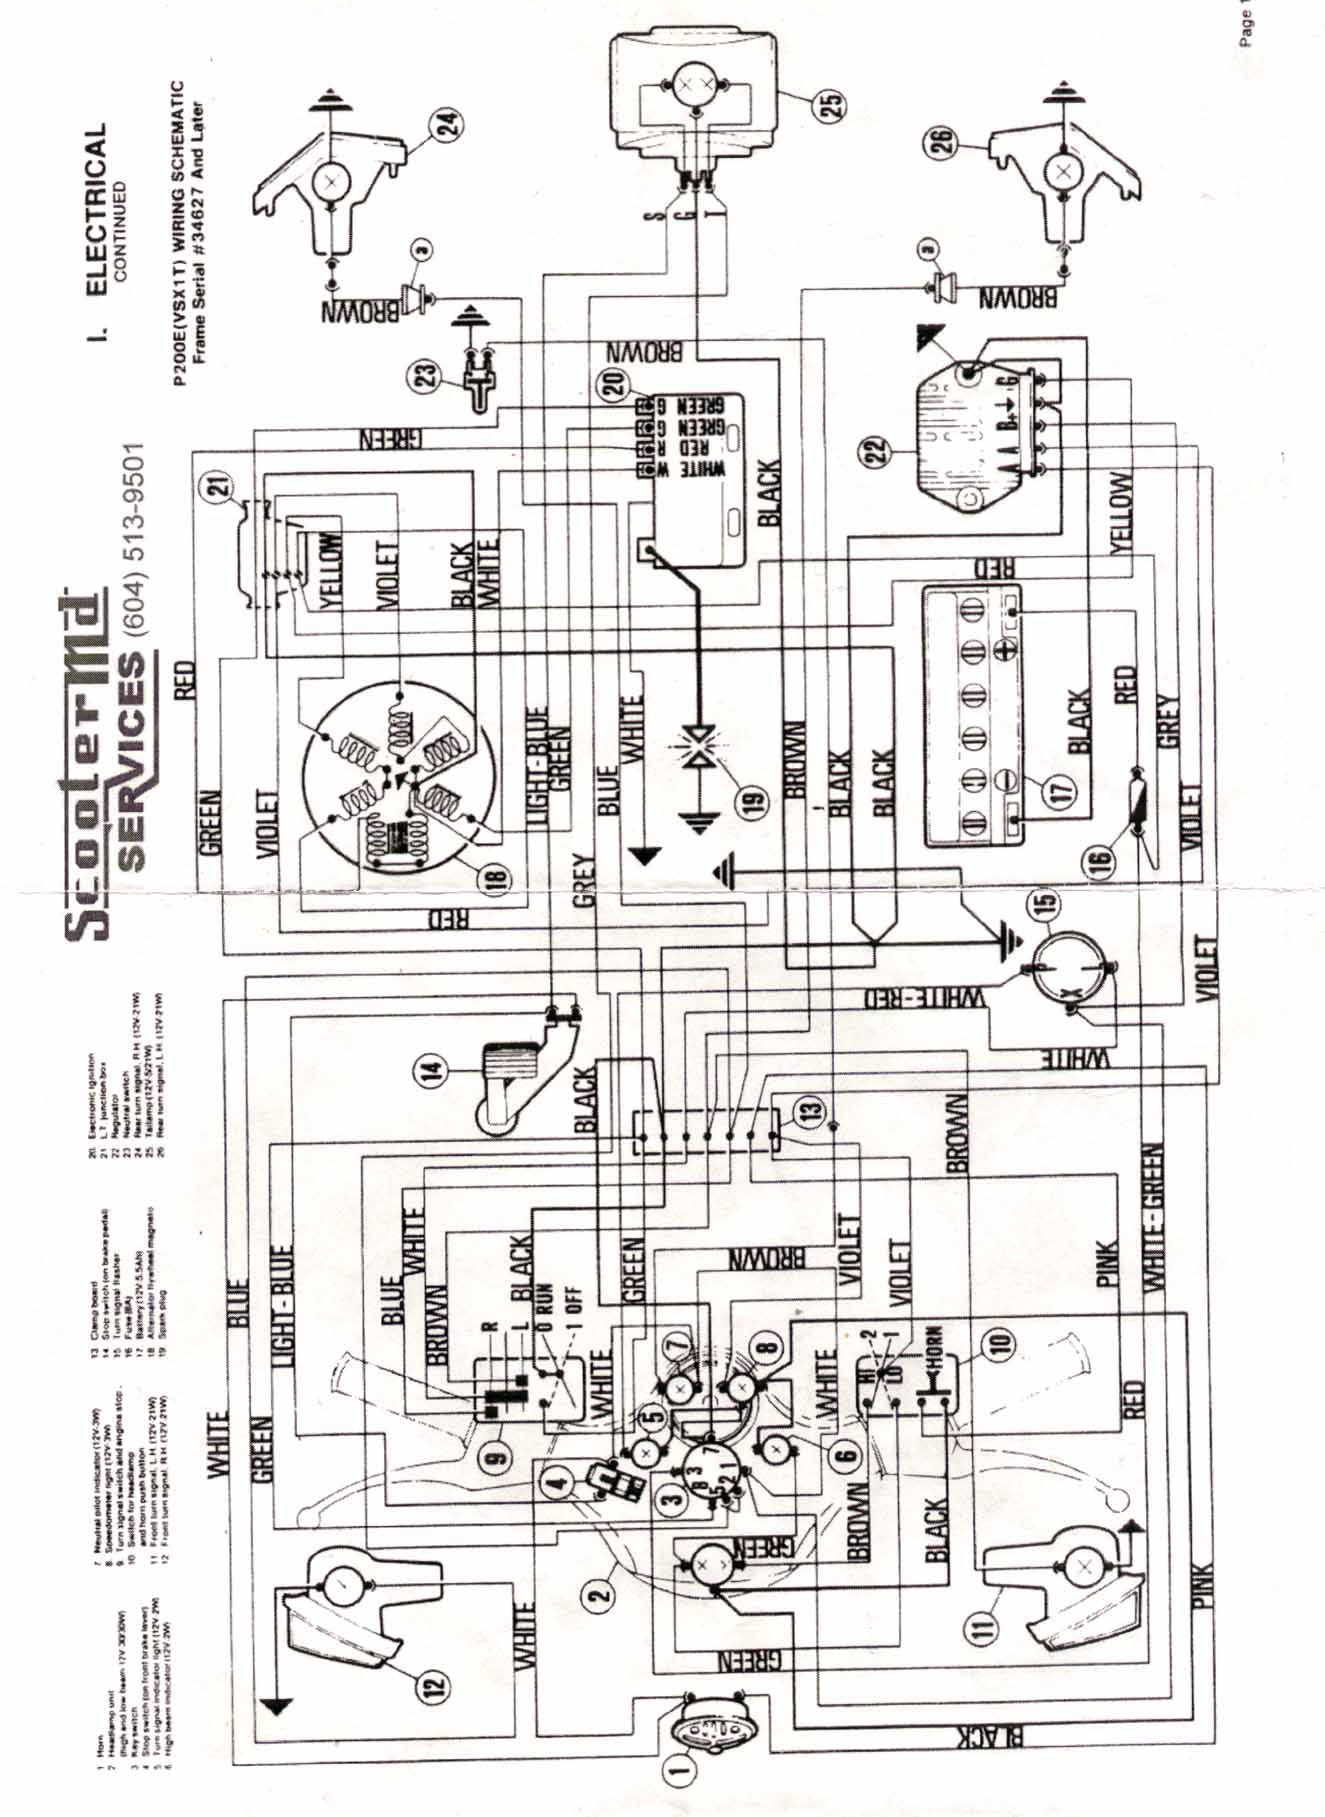 p200diag2 vespa p series maintenance & repair vespa p125x wiring diagram at aneh.co